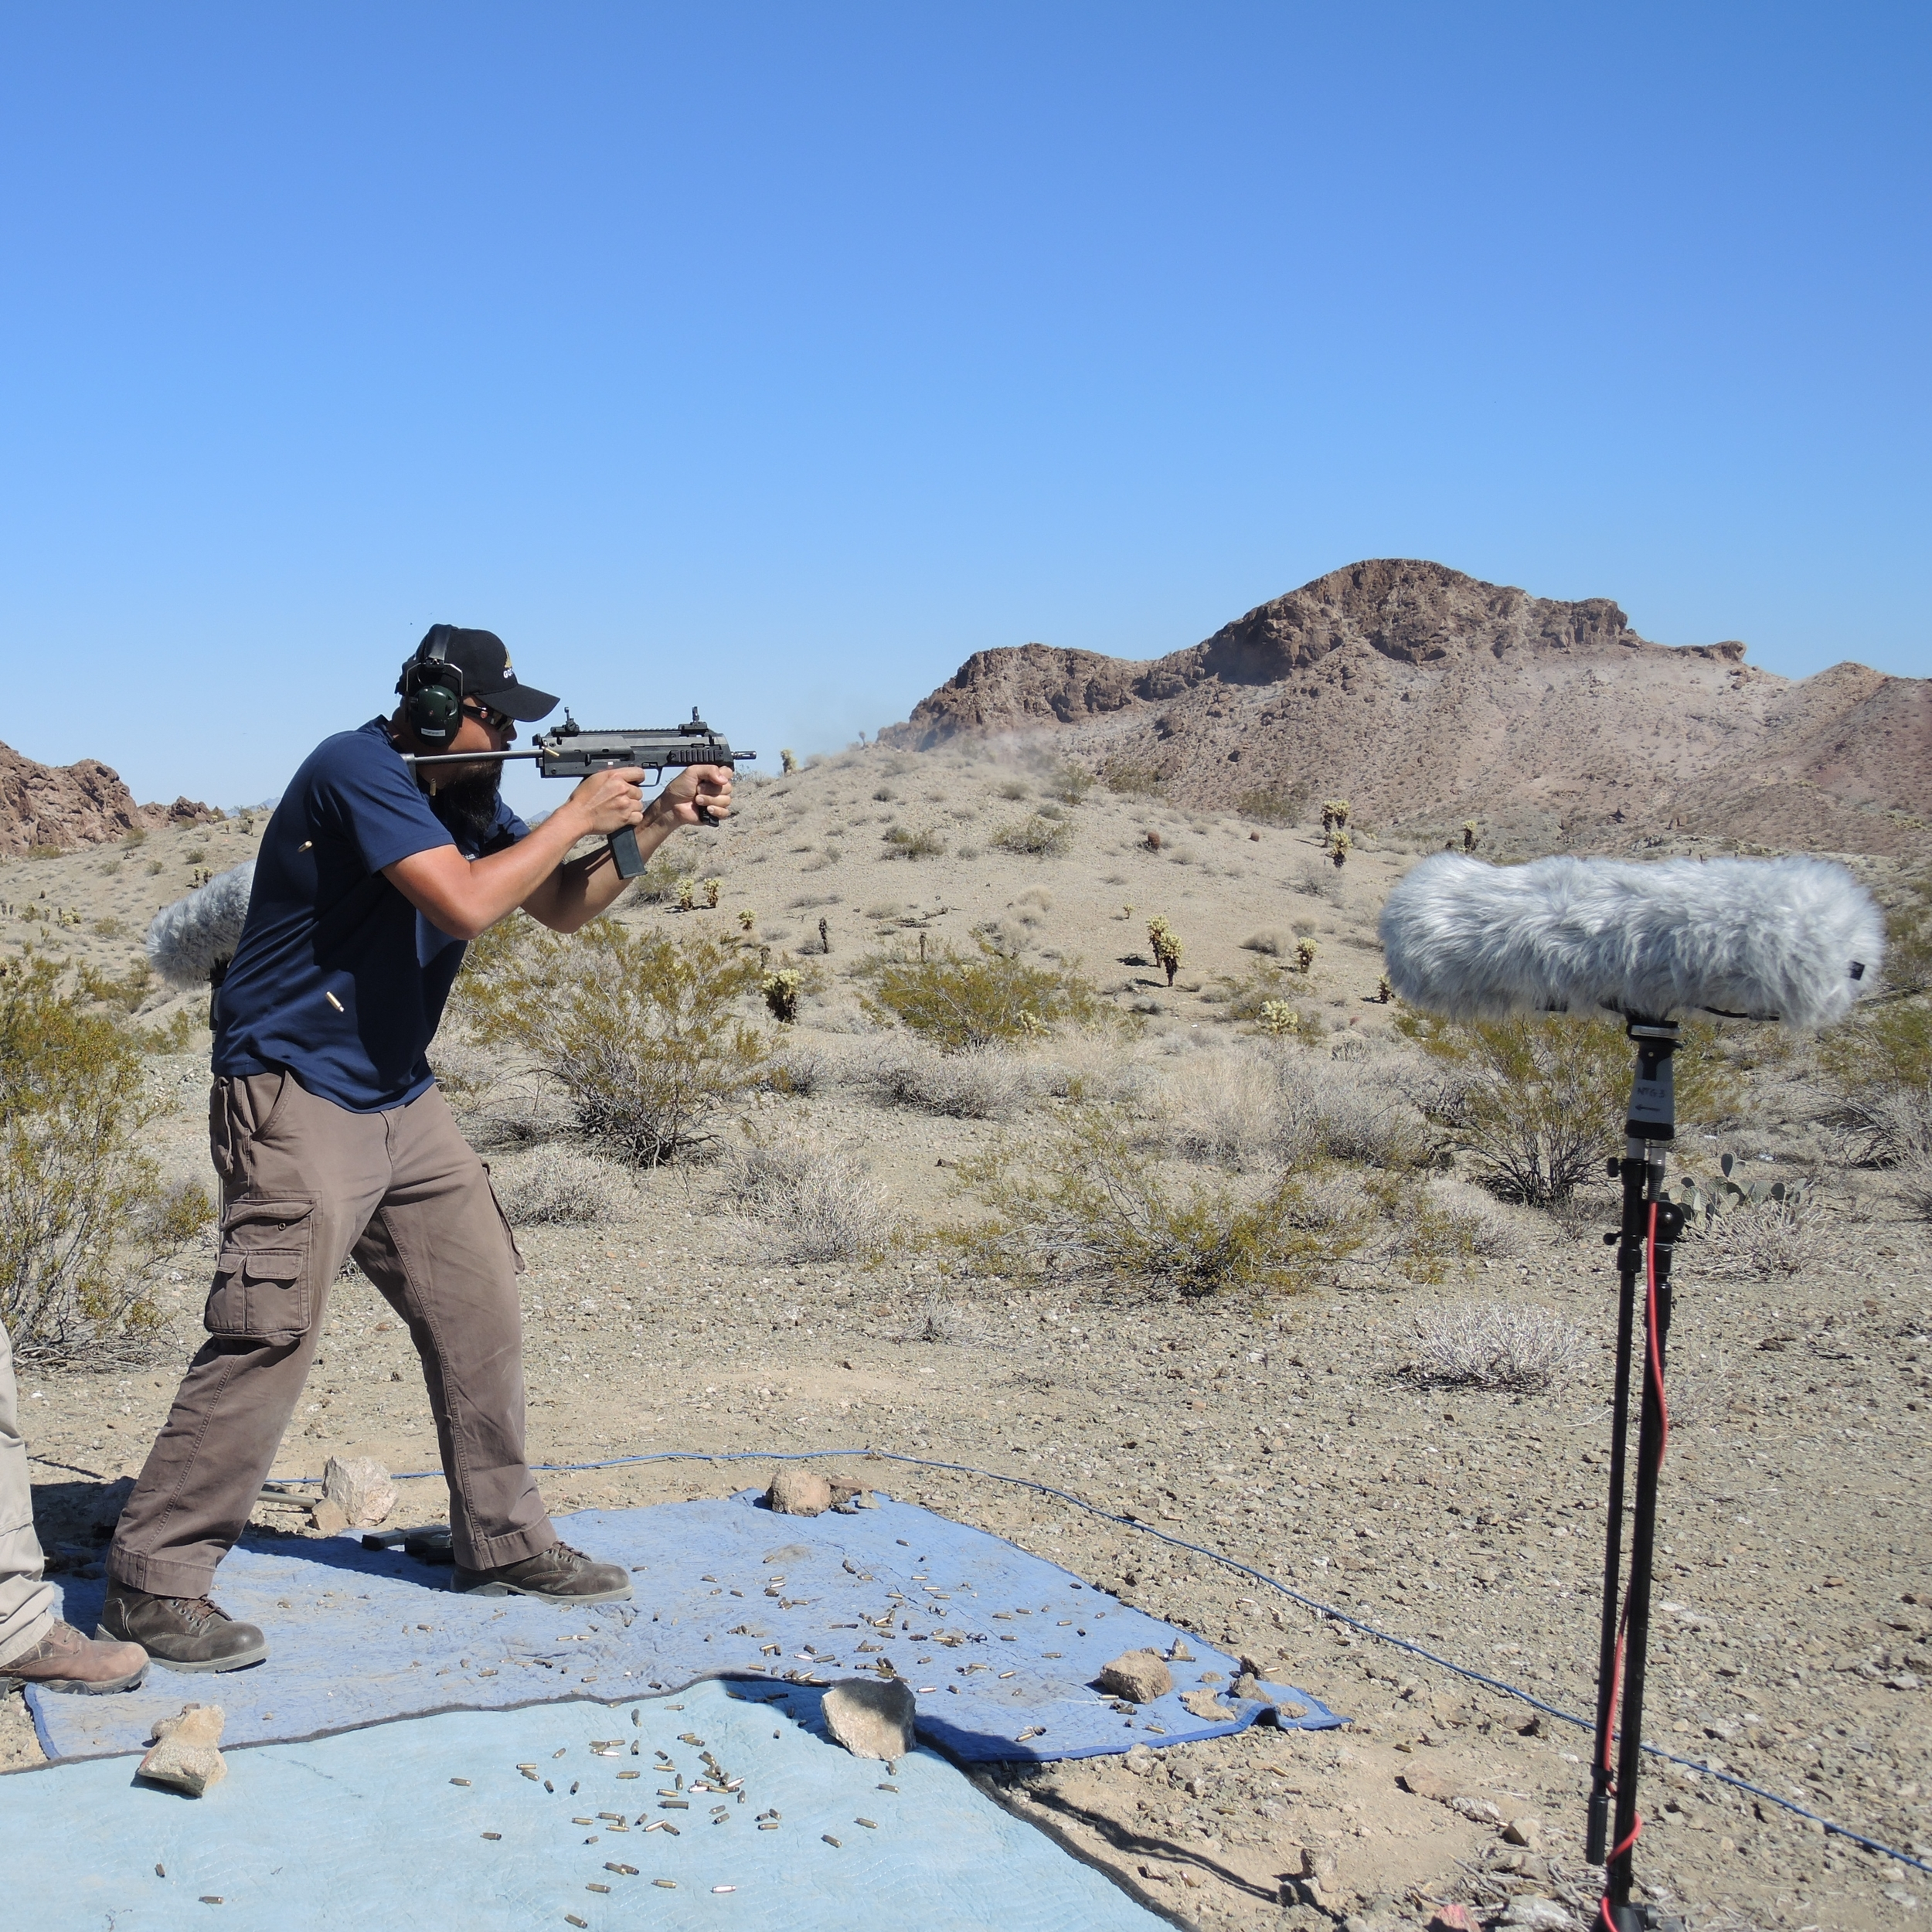 Recording & shooting an MP7 submachine gun